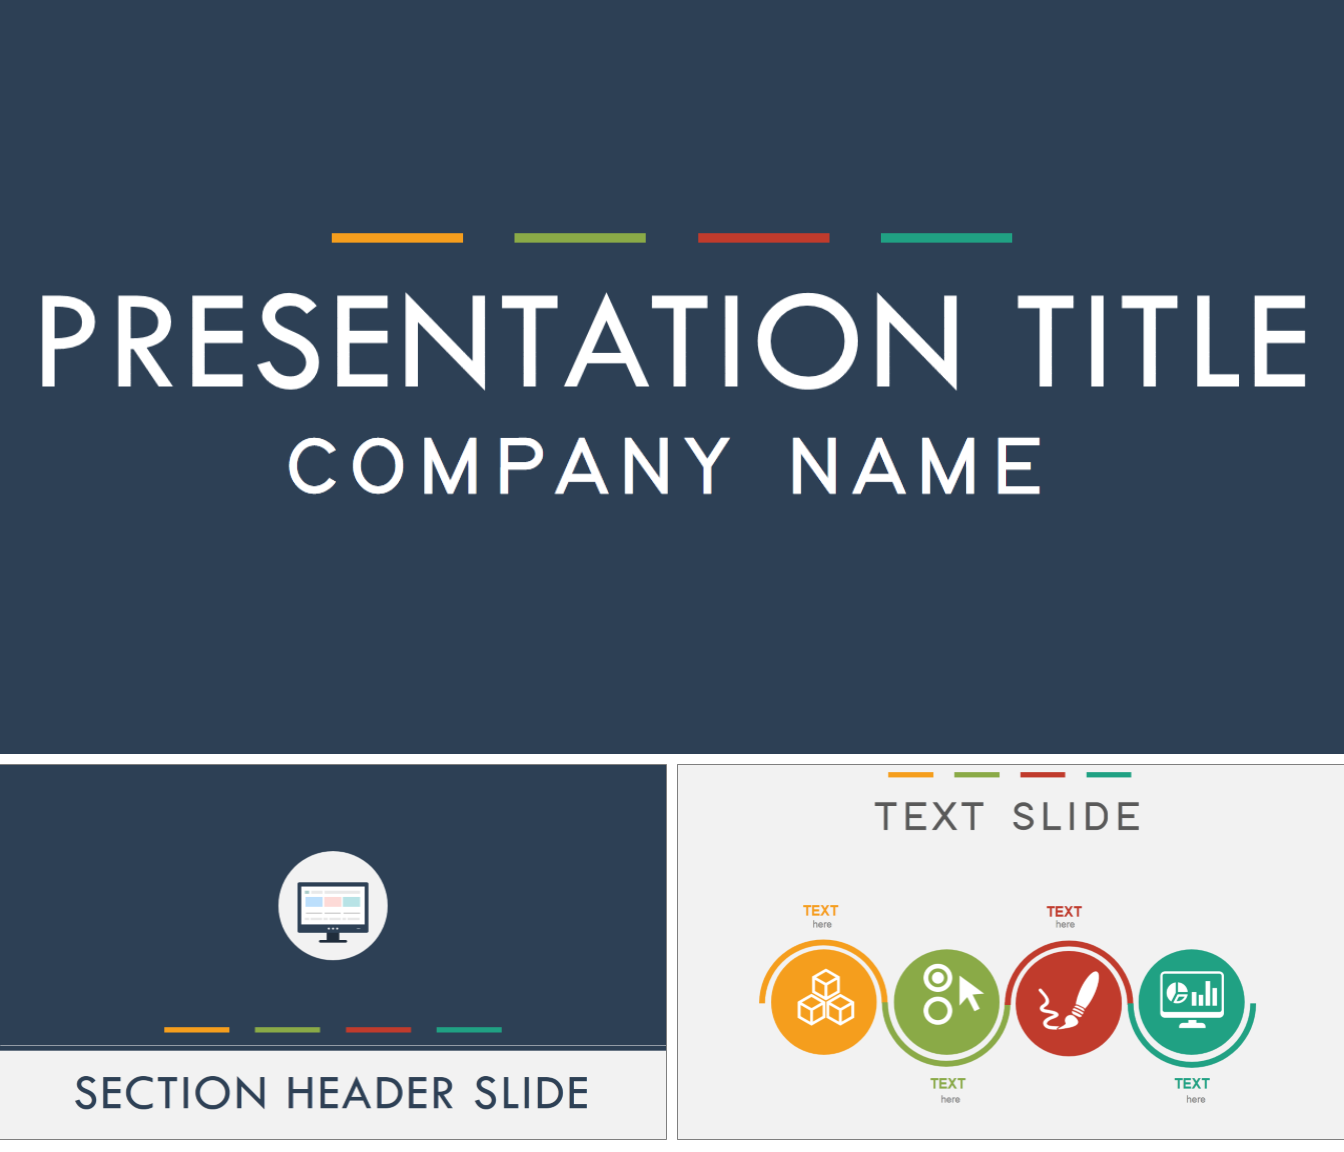 7 amazing powerpoint template designs for your company or personal heres a flat design powerpoint template that you can use for any kind of presentation company or personal toneelgroepblik Image collections